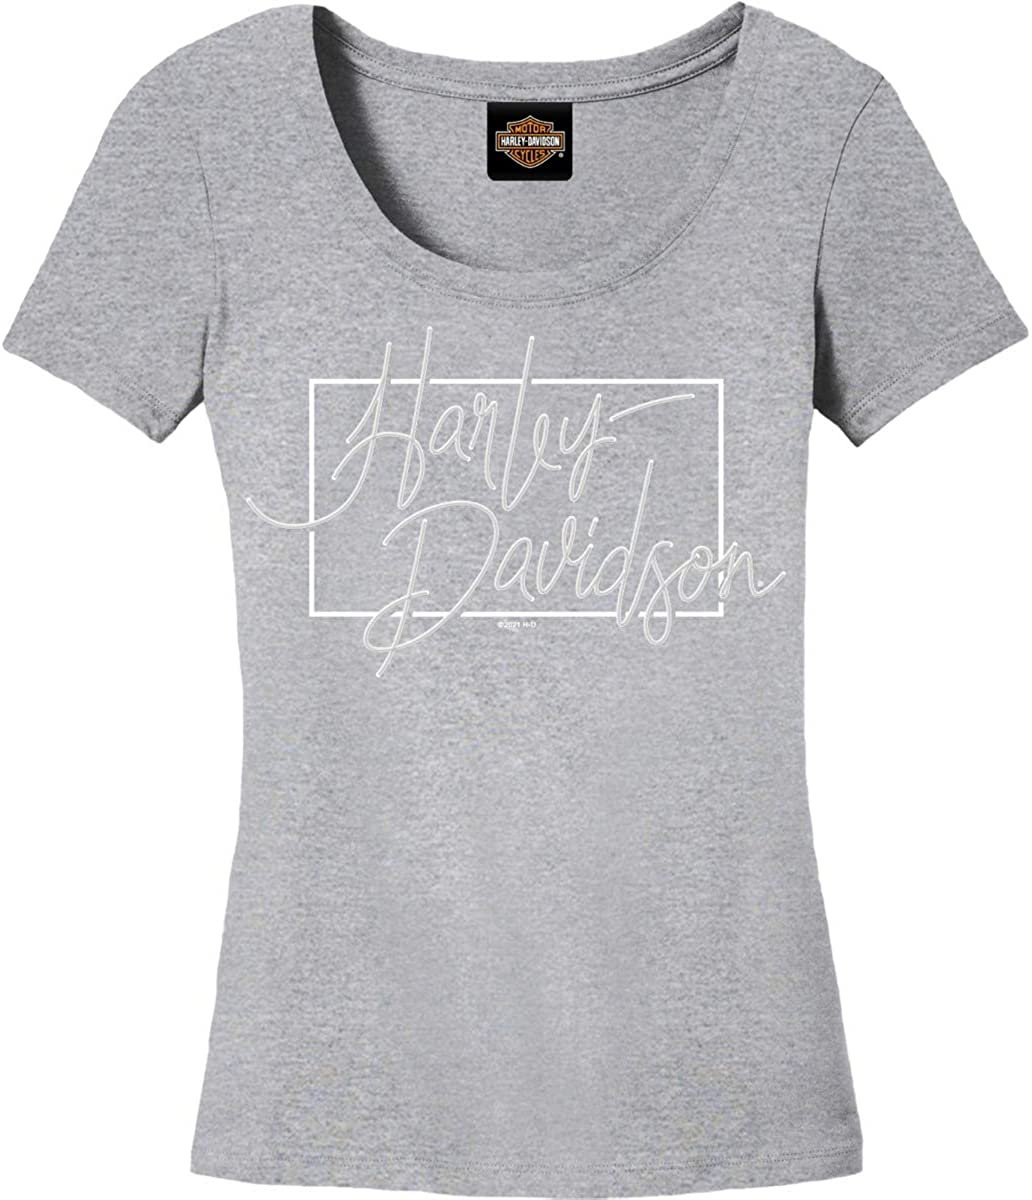 Harley-Davidson Military - Women's Grey Graphic Max 86% OFF Heather Our shop most popular Tri-Blen